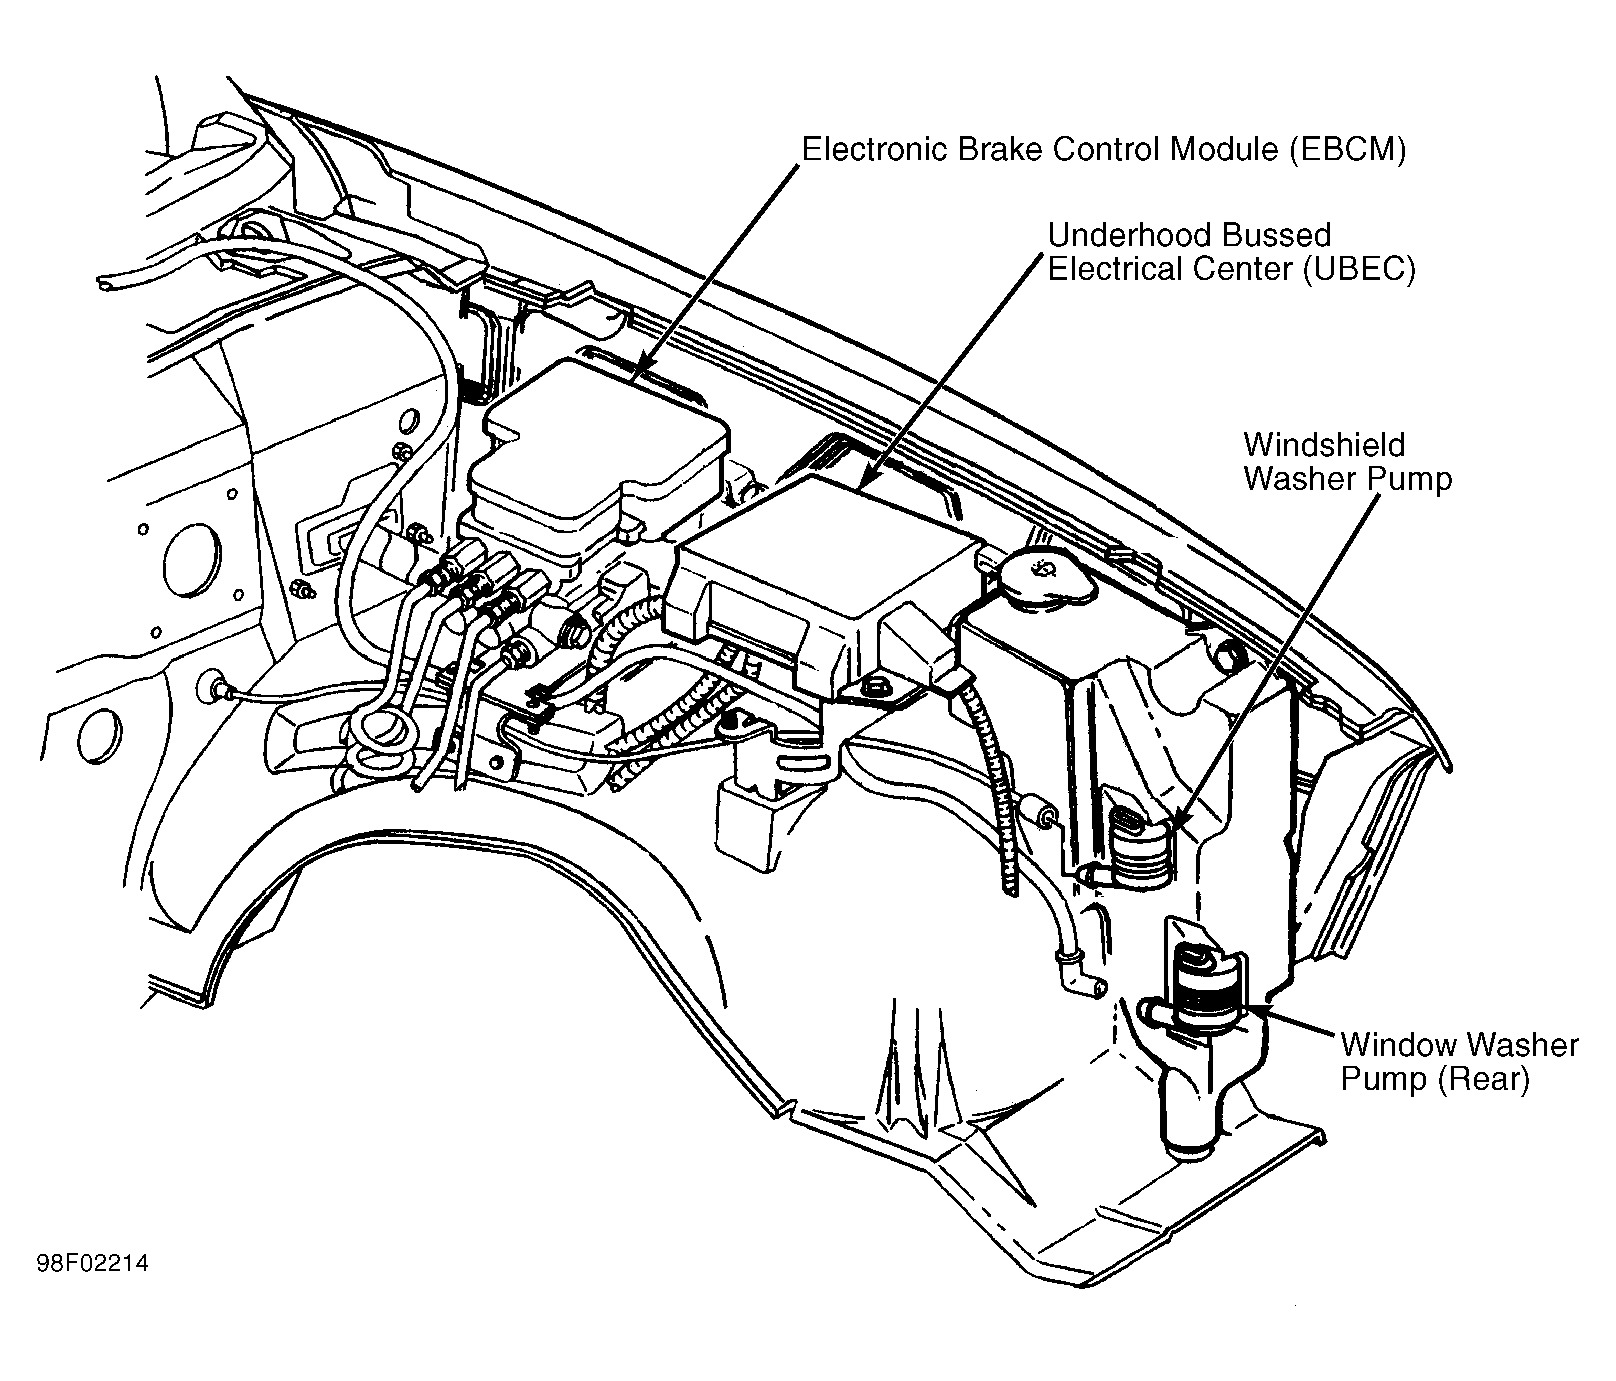 hight resolution of wrg 8908 01 cherokee fuse junction box location1998 gmc sonoma fuse box detailed schematics diagram